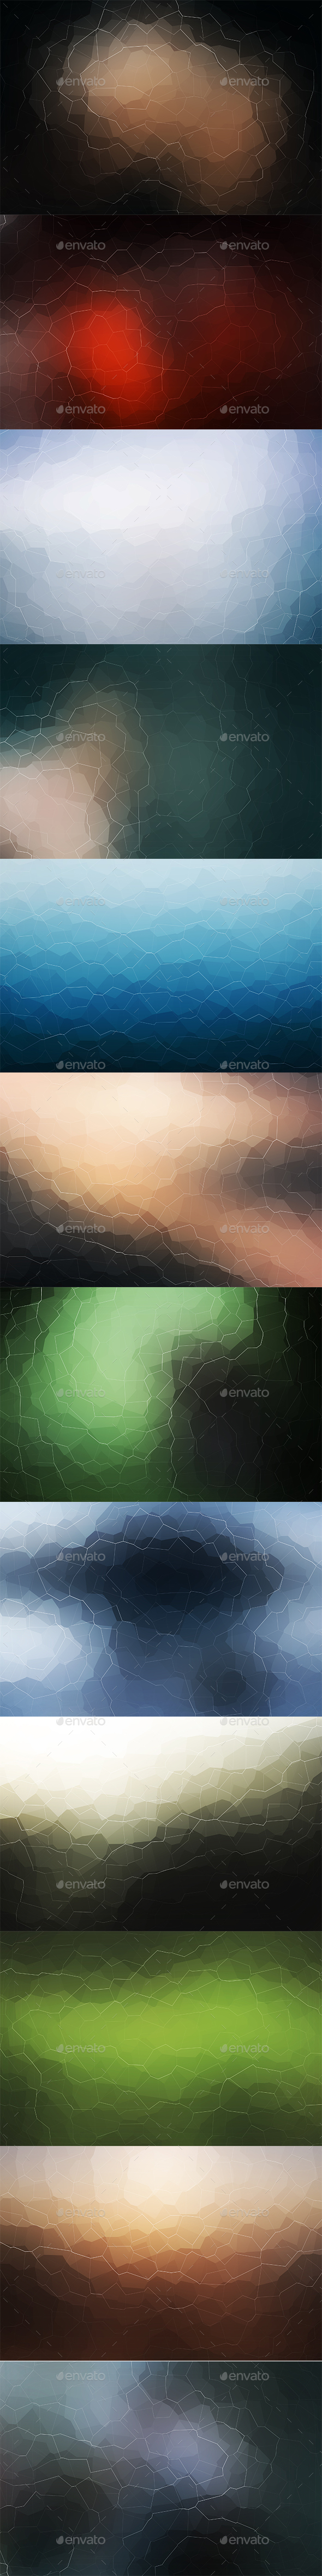 Crystallized Backgrounds Vol 12 - Abstract Backgrounds